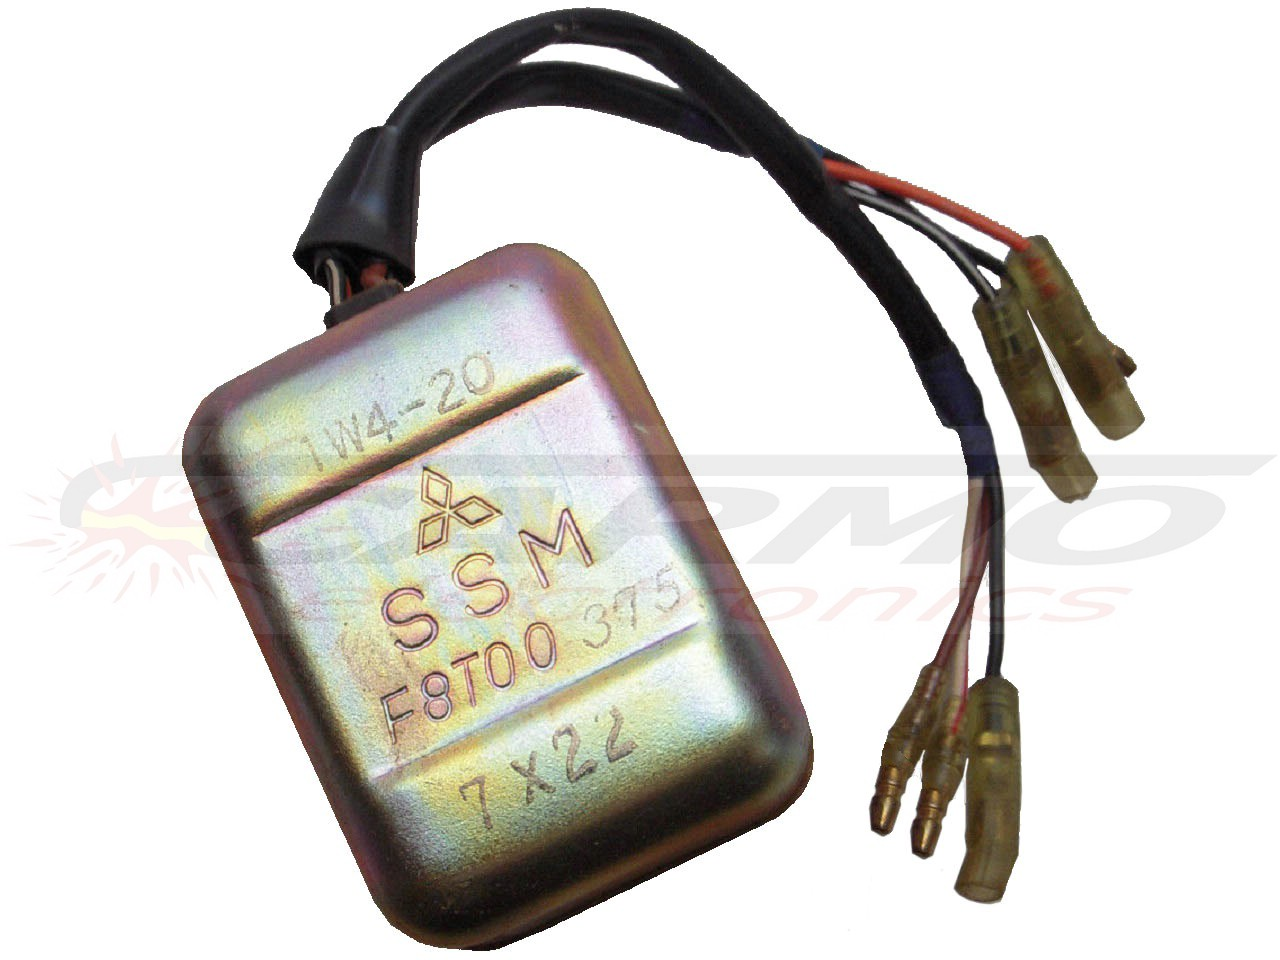 Yamaha Carmo Electronics The Place For Parts Or Tci Wiring Diagram 750 Maxim It250 It400 Igniter Ignition Module Cdi Box F8t00375